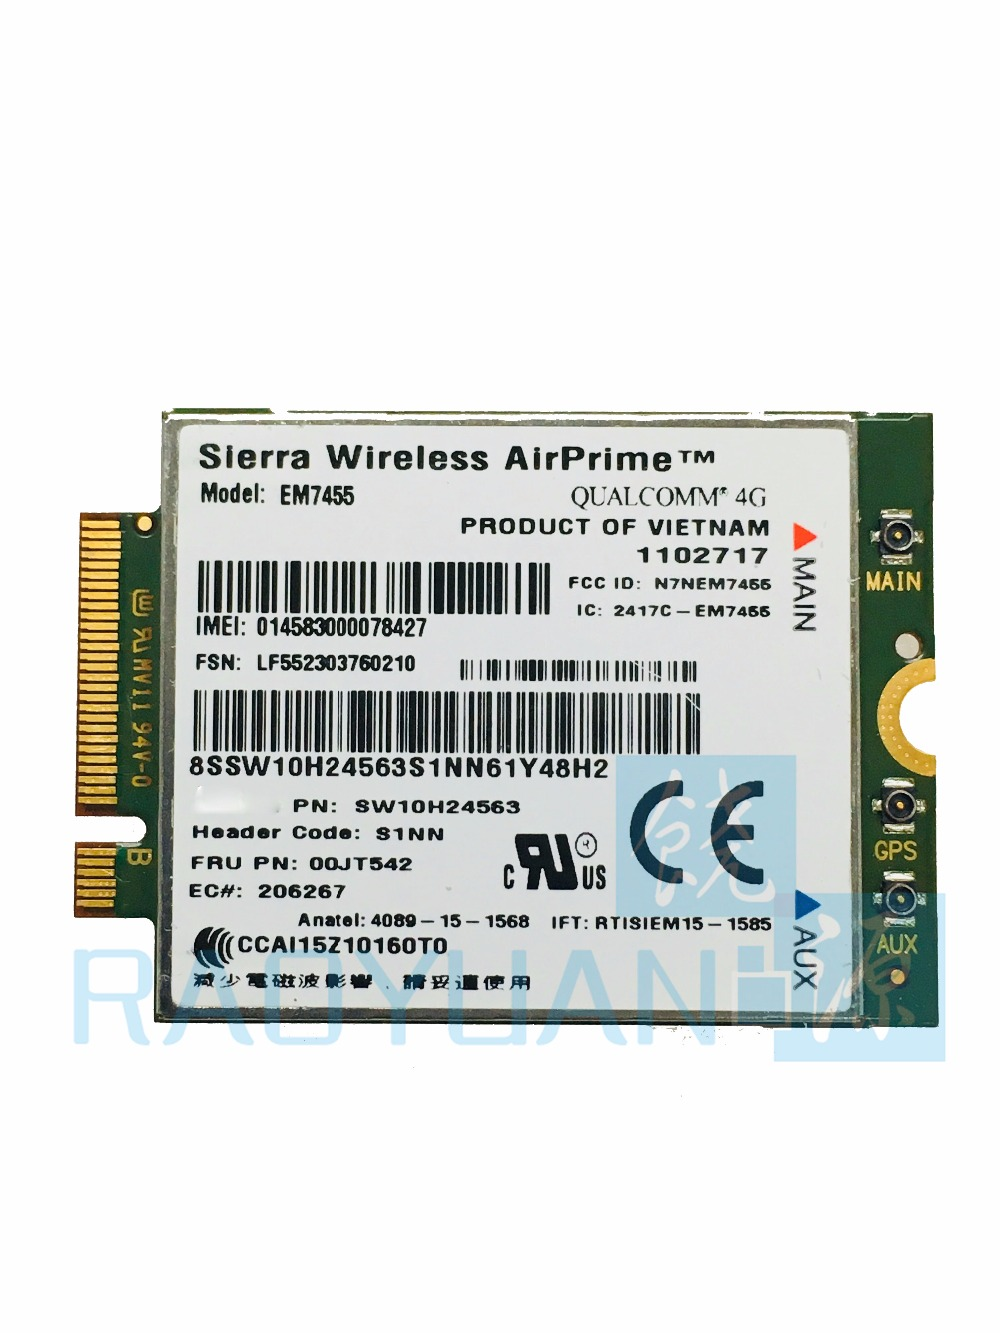 4G LTE WWAN CARD for Sierra Wireless Airprime EM7455 QUALCOMM FRU:00JT542 For Lenovo X260 T460 P50 P70 L560 X1 Carbon brand new for intel 7265ngw bn wireless n 7265 ngff wireless wifi card laptop network wlan adapter fru 04x6032 for ibm lenovo